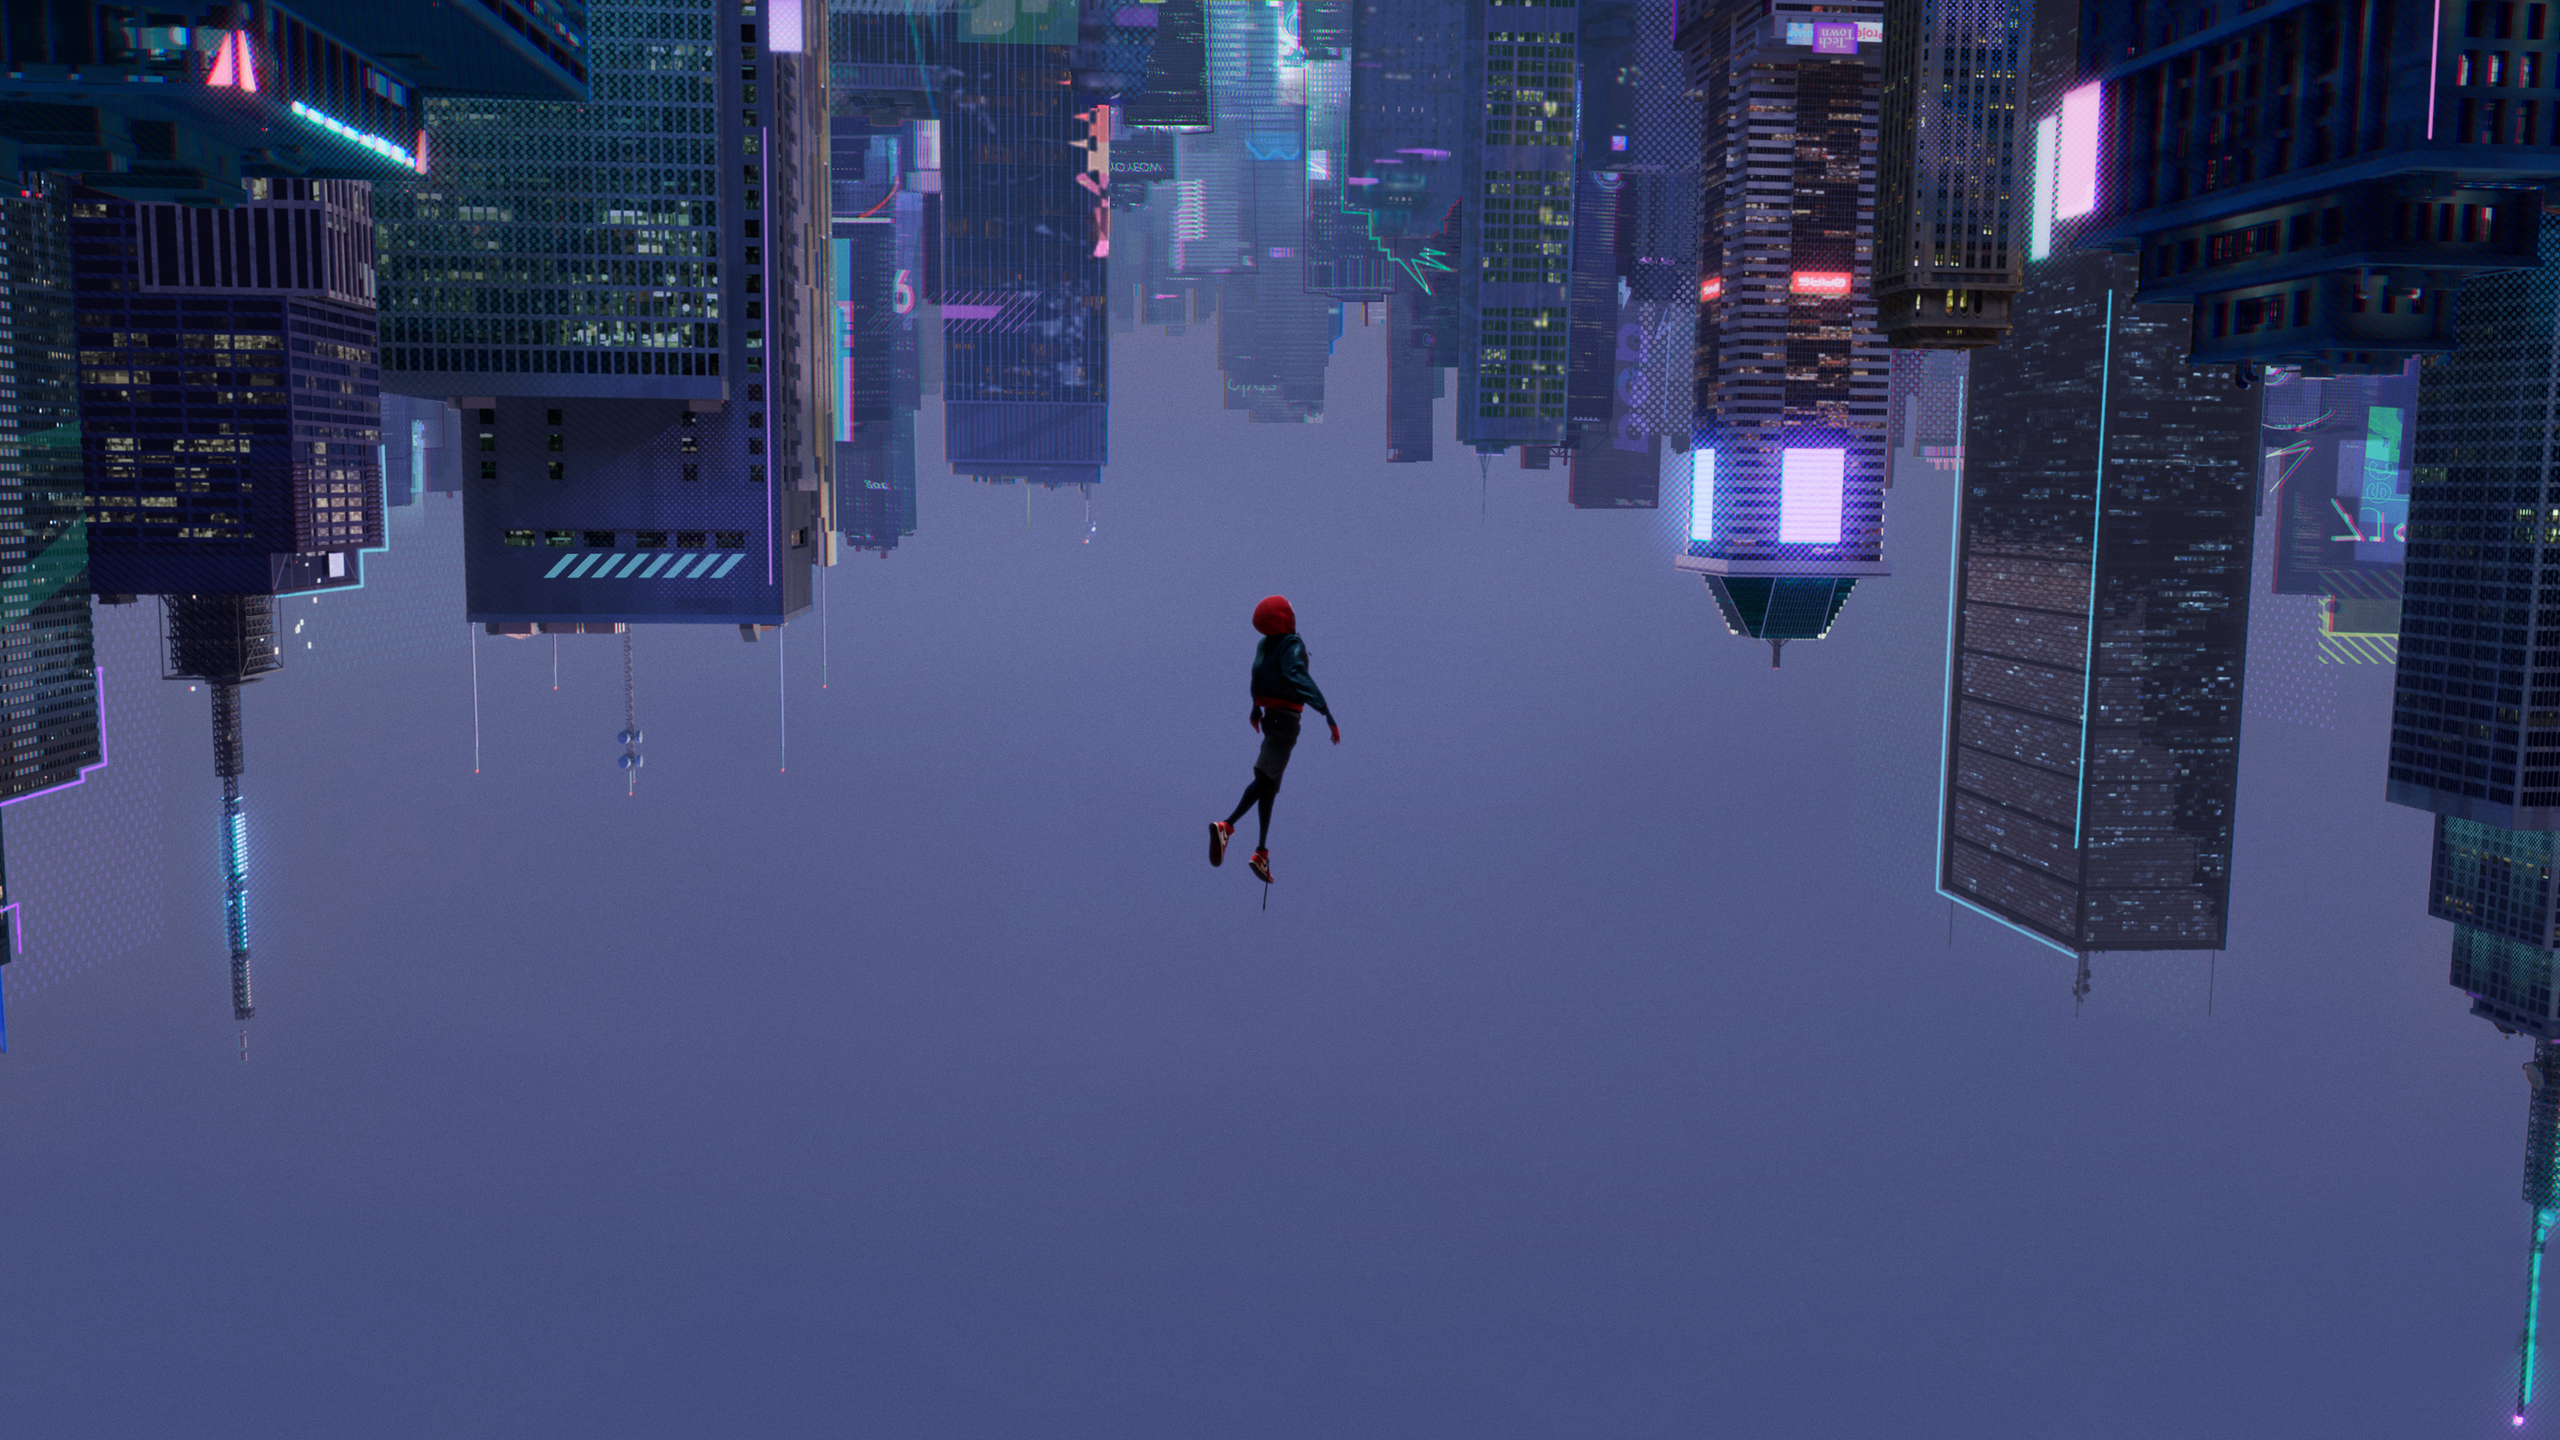 2560x1440 SpiderMan Into The Spider Verse 2018 Movie 1440P Resolution HD 4k Wallpapers, Images, Backgrounds, Photos and Pictures